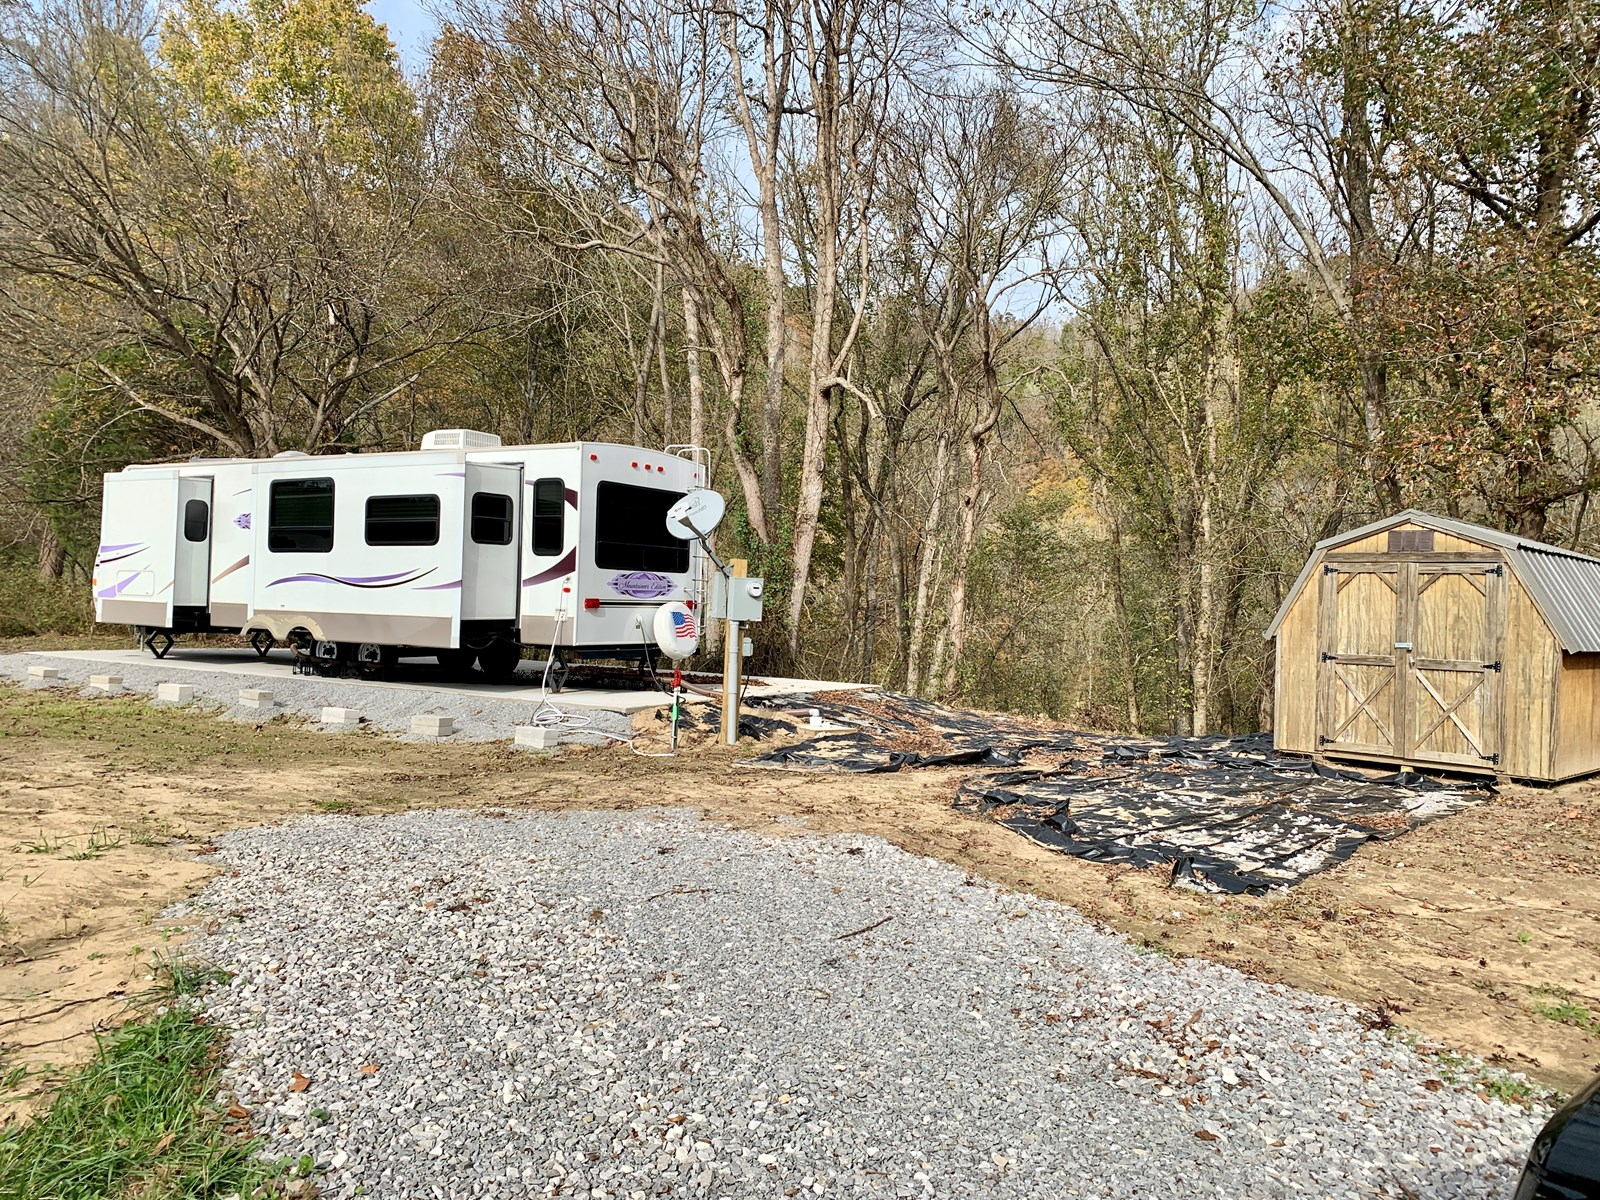 Land for Sale with camper, Burkesville, Kentucky